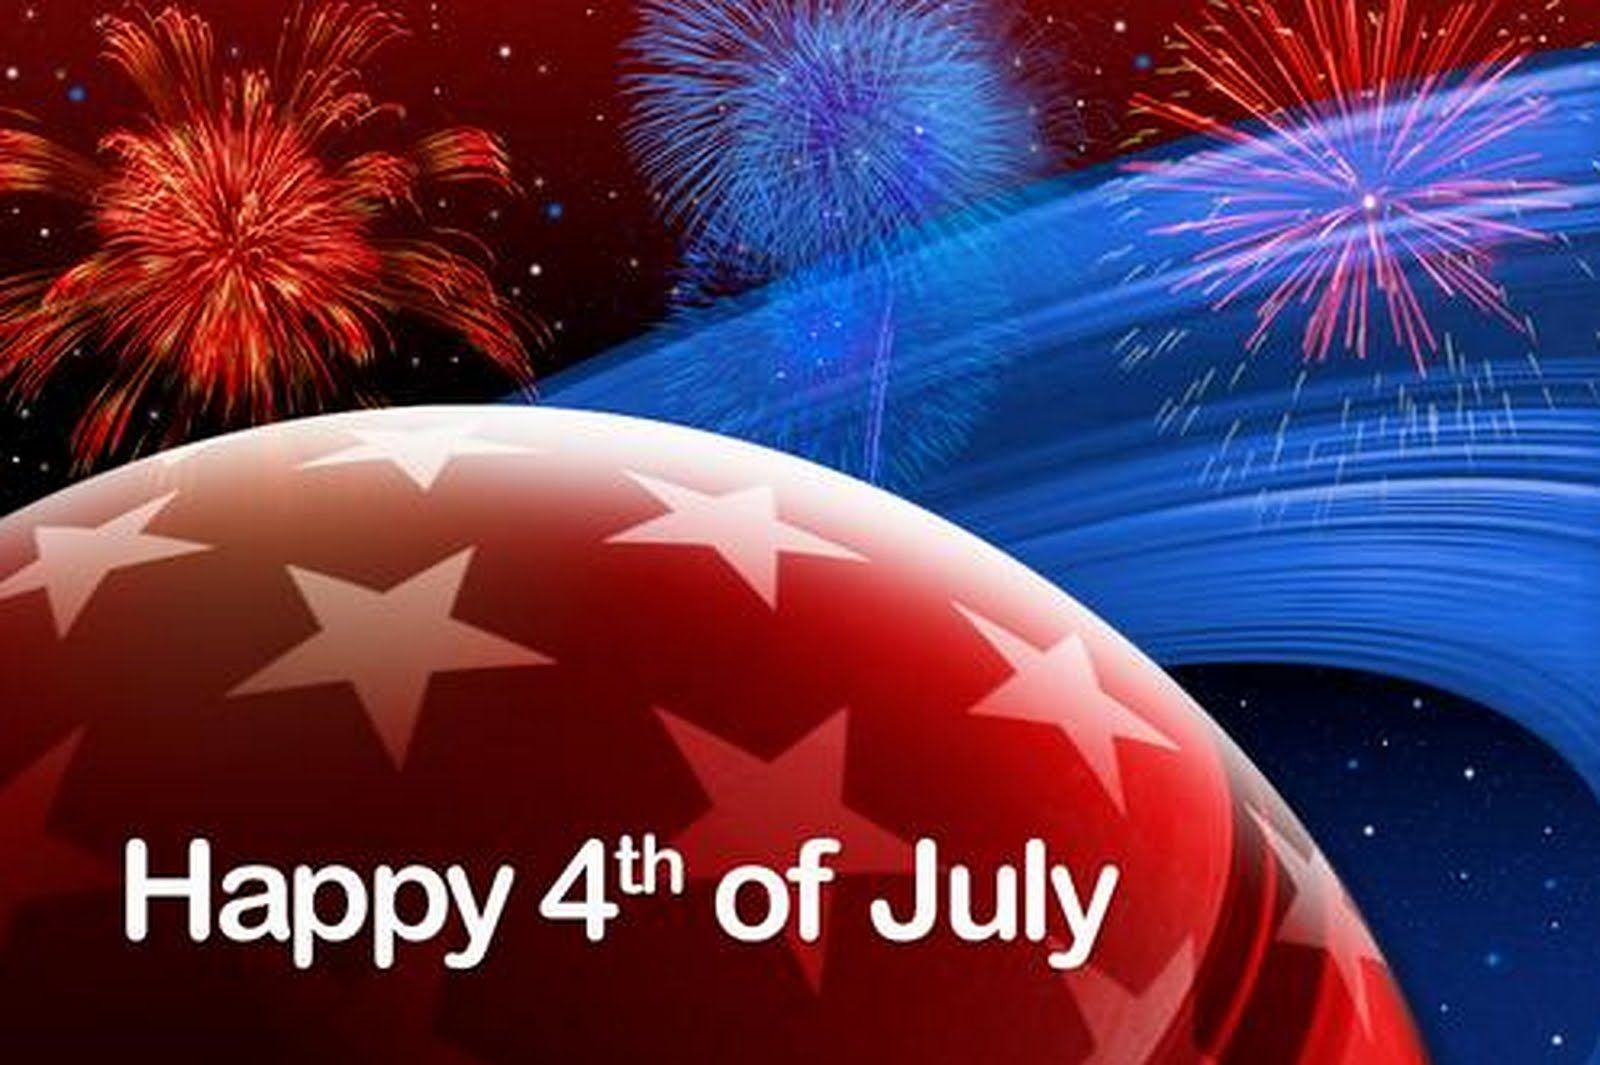 4th Of July 2018 4th Of July Wishes 4th Of July Messages 4th Of